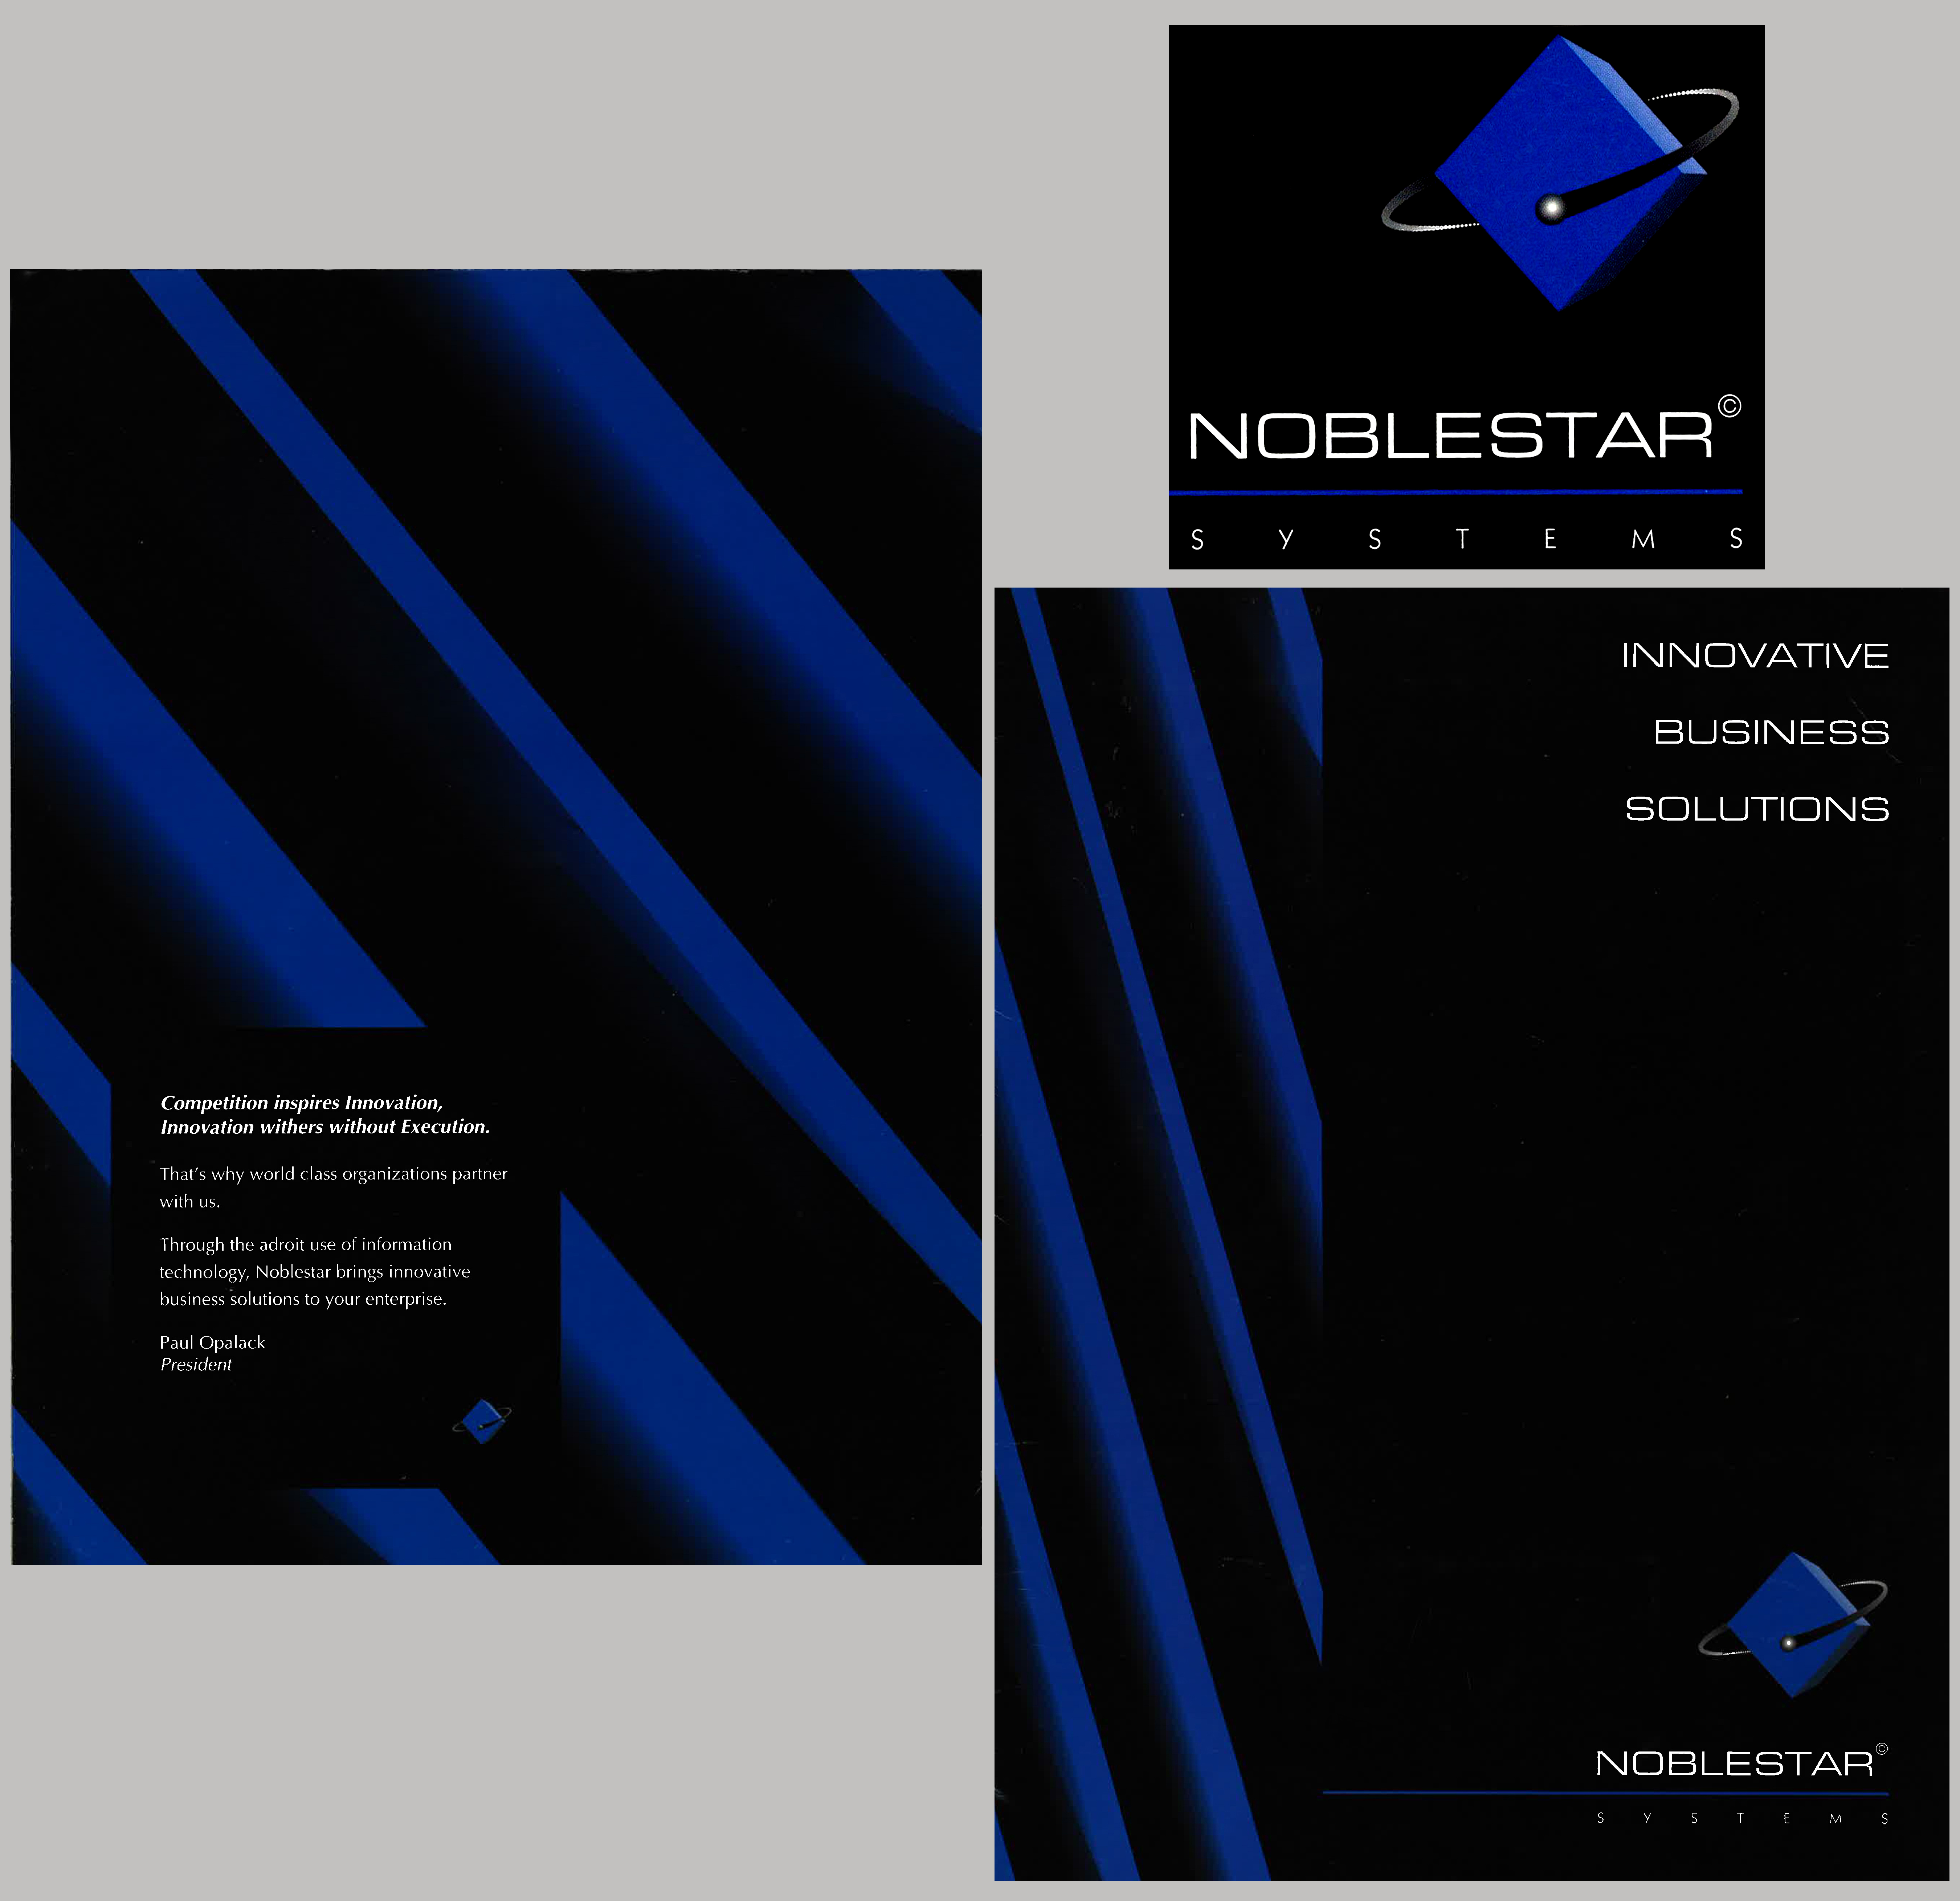 Corporate Identity Package for Noblestar